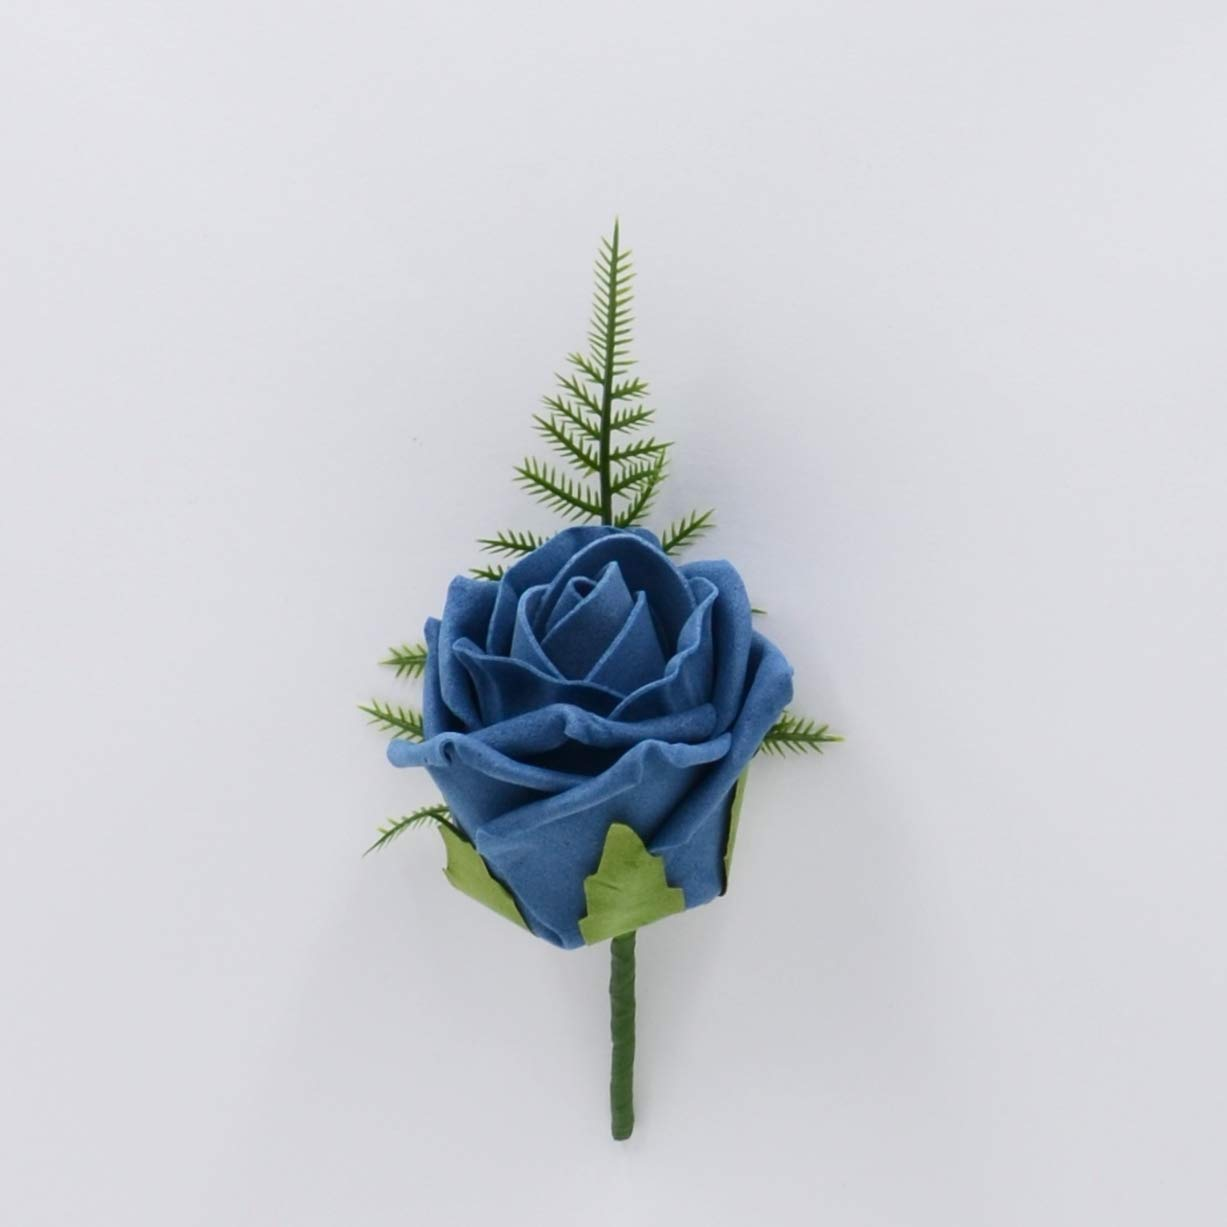 Artificial Wedding Flowers Hand-Made by Petals Polly, Foam Rose Buttonhole in Teal PETALS POLLY FLOWERS